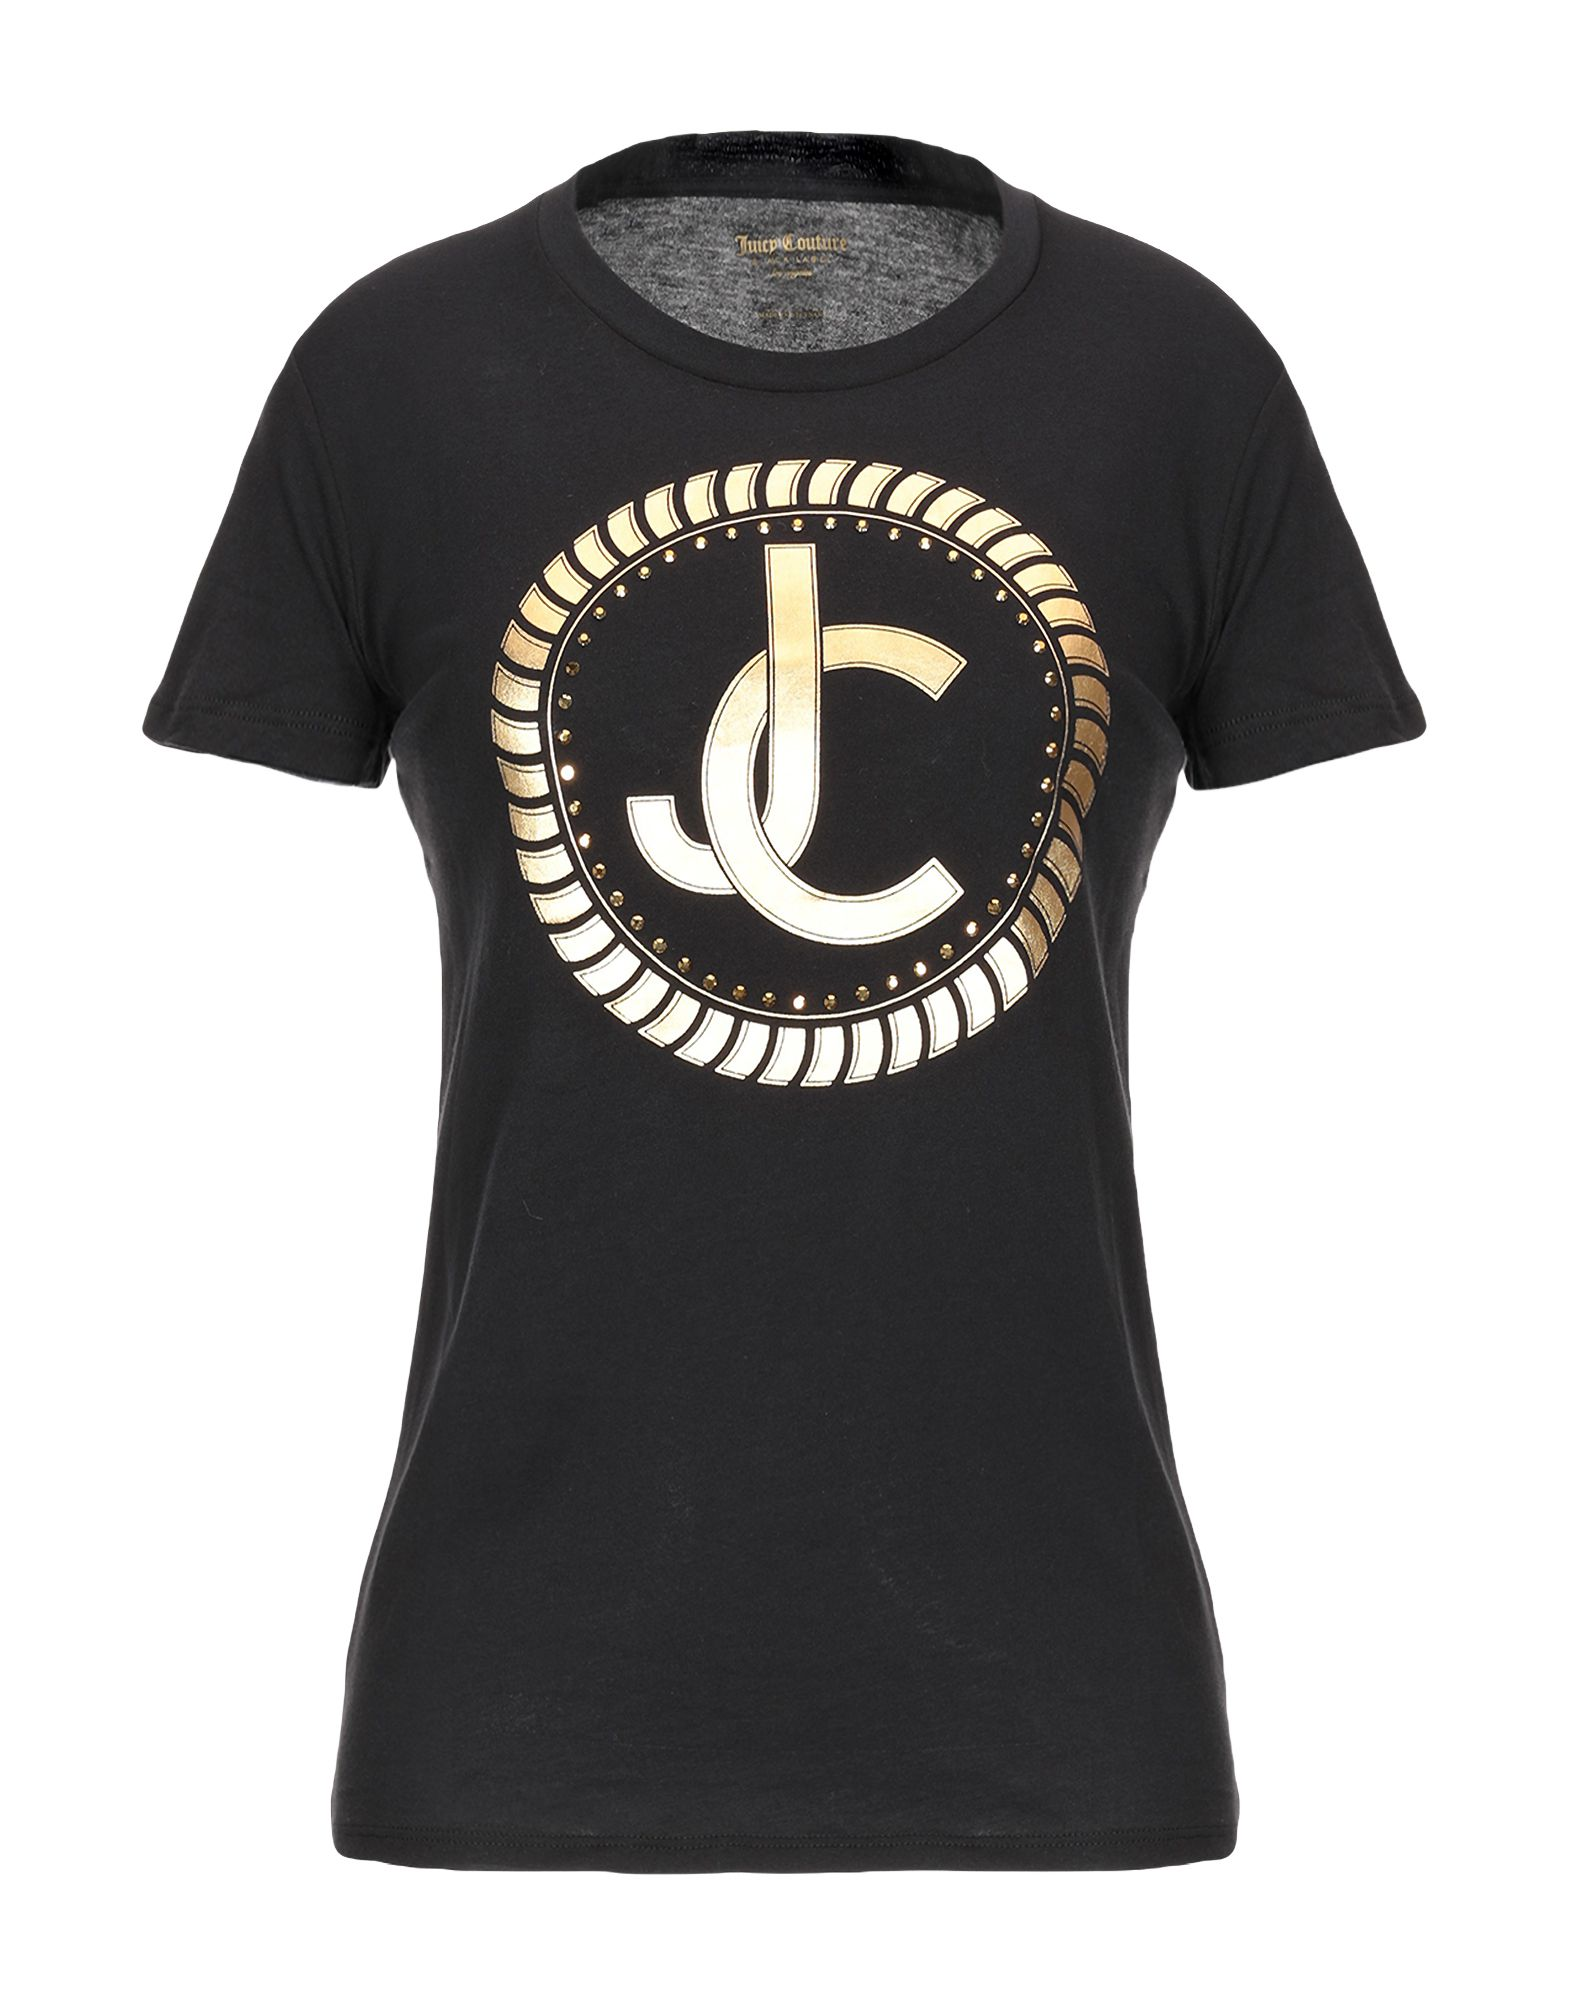 2d485e783c43 Juicy Couture T-Shirt - Women Juicy Couture T-Shirts online on YOOX ...